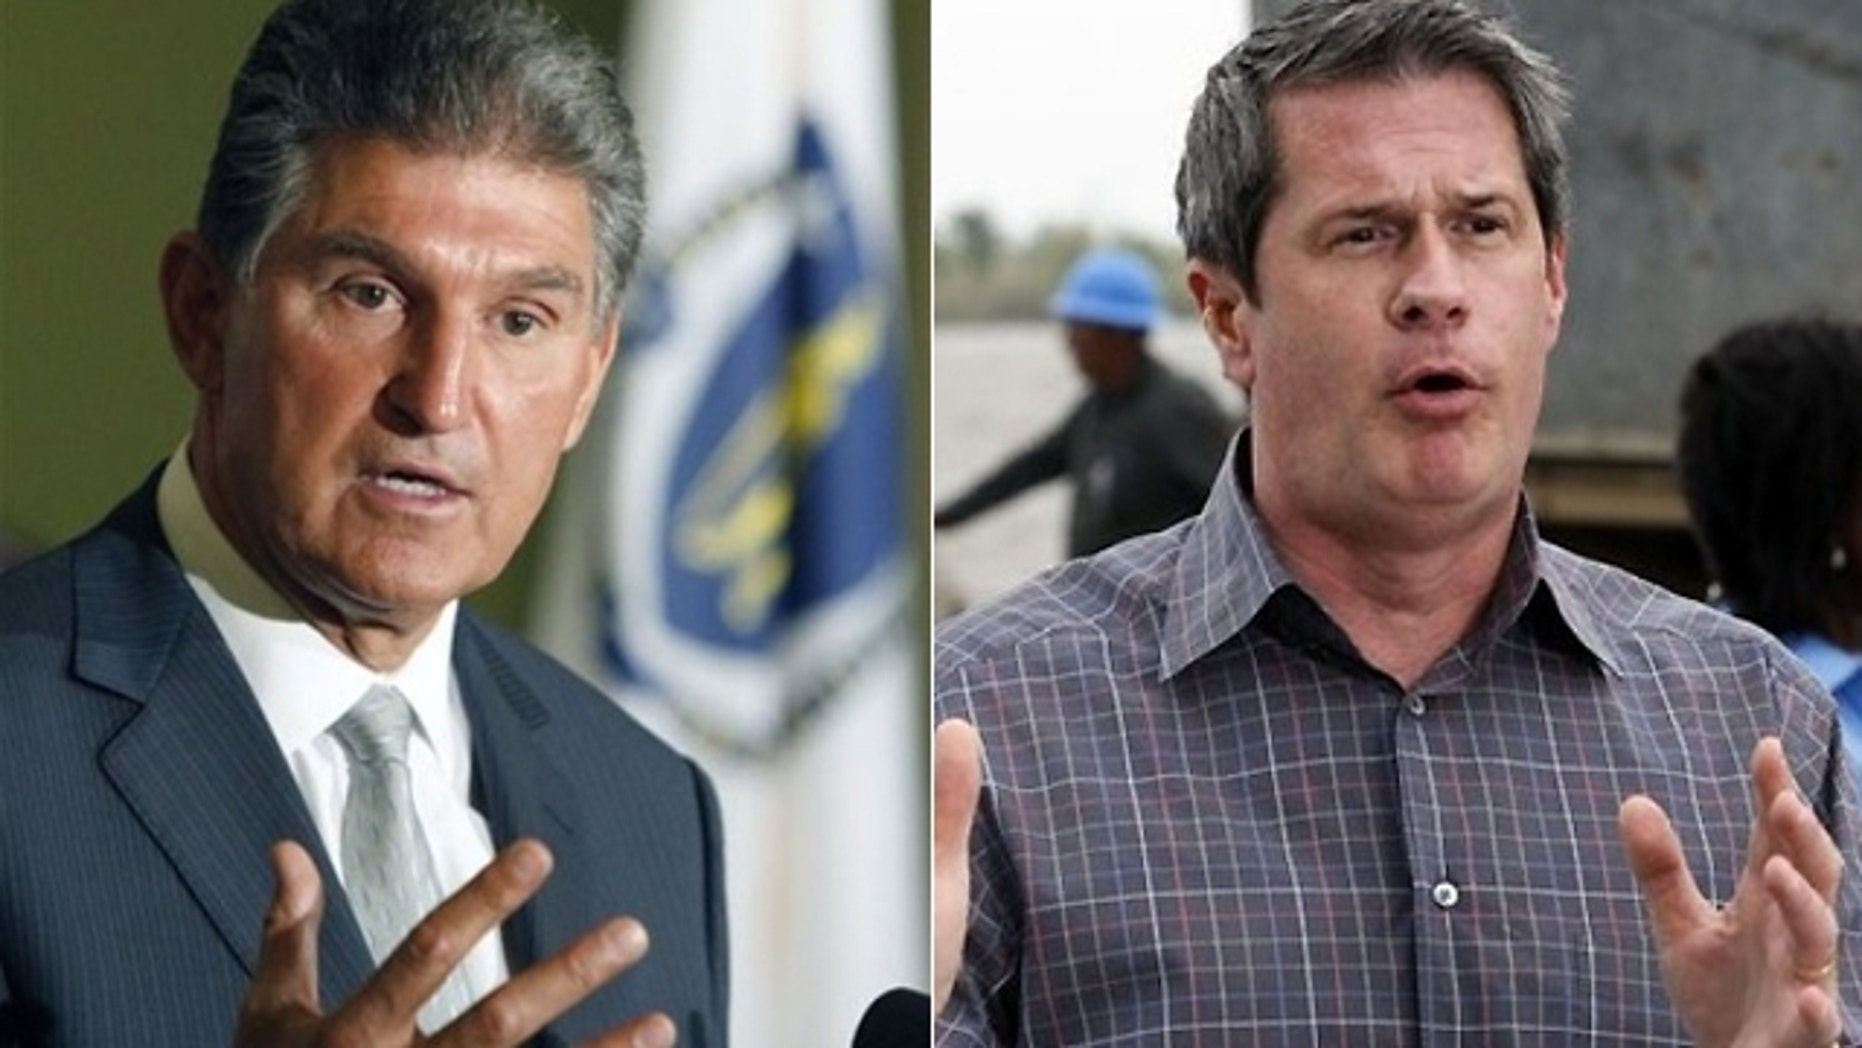 West Virginia Democratic Gov. Joe Manchin, left, easily won his party's nomination and will face GOP primary winner John Raese in the race for the U.S. Senate seat held by the late Robert C. Byrd, while Republican Sen. David Vitter, right, will face Democratic primary winner Rep. Charlie Melancon in a U.S. Senate race in Louisiana. (AP photo)